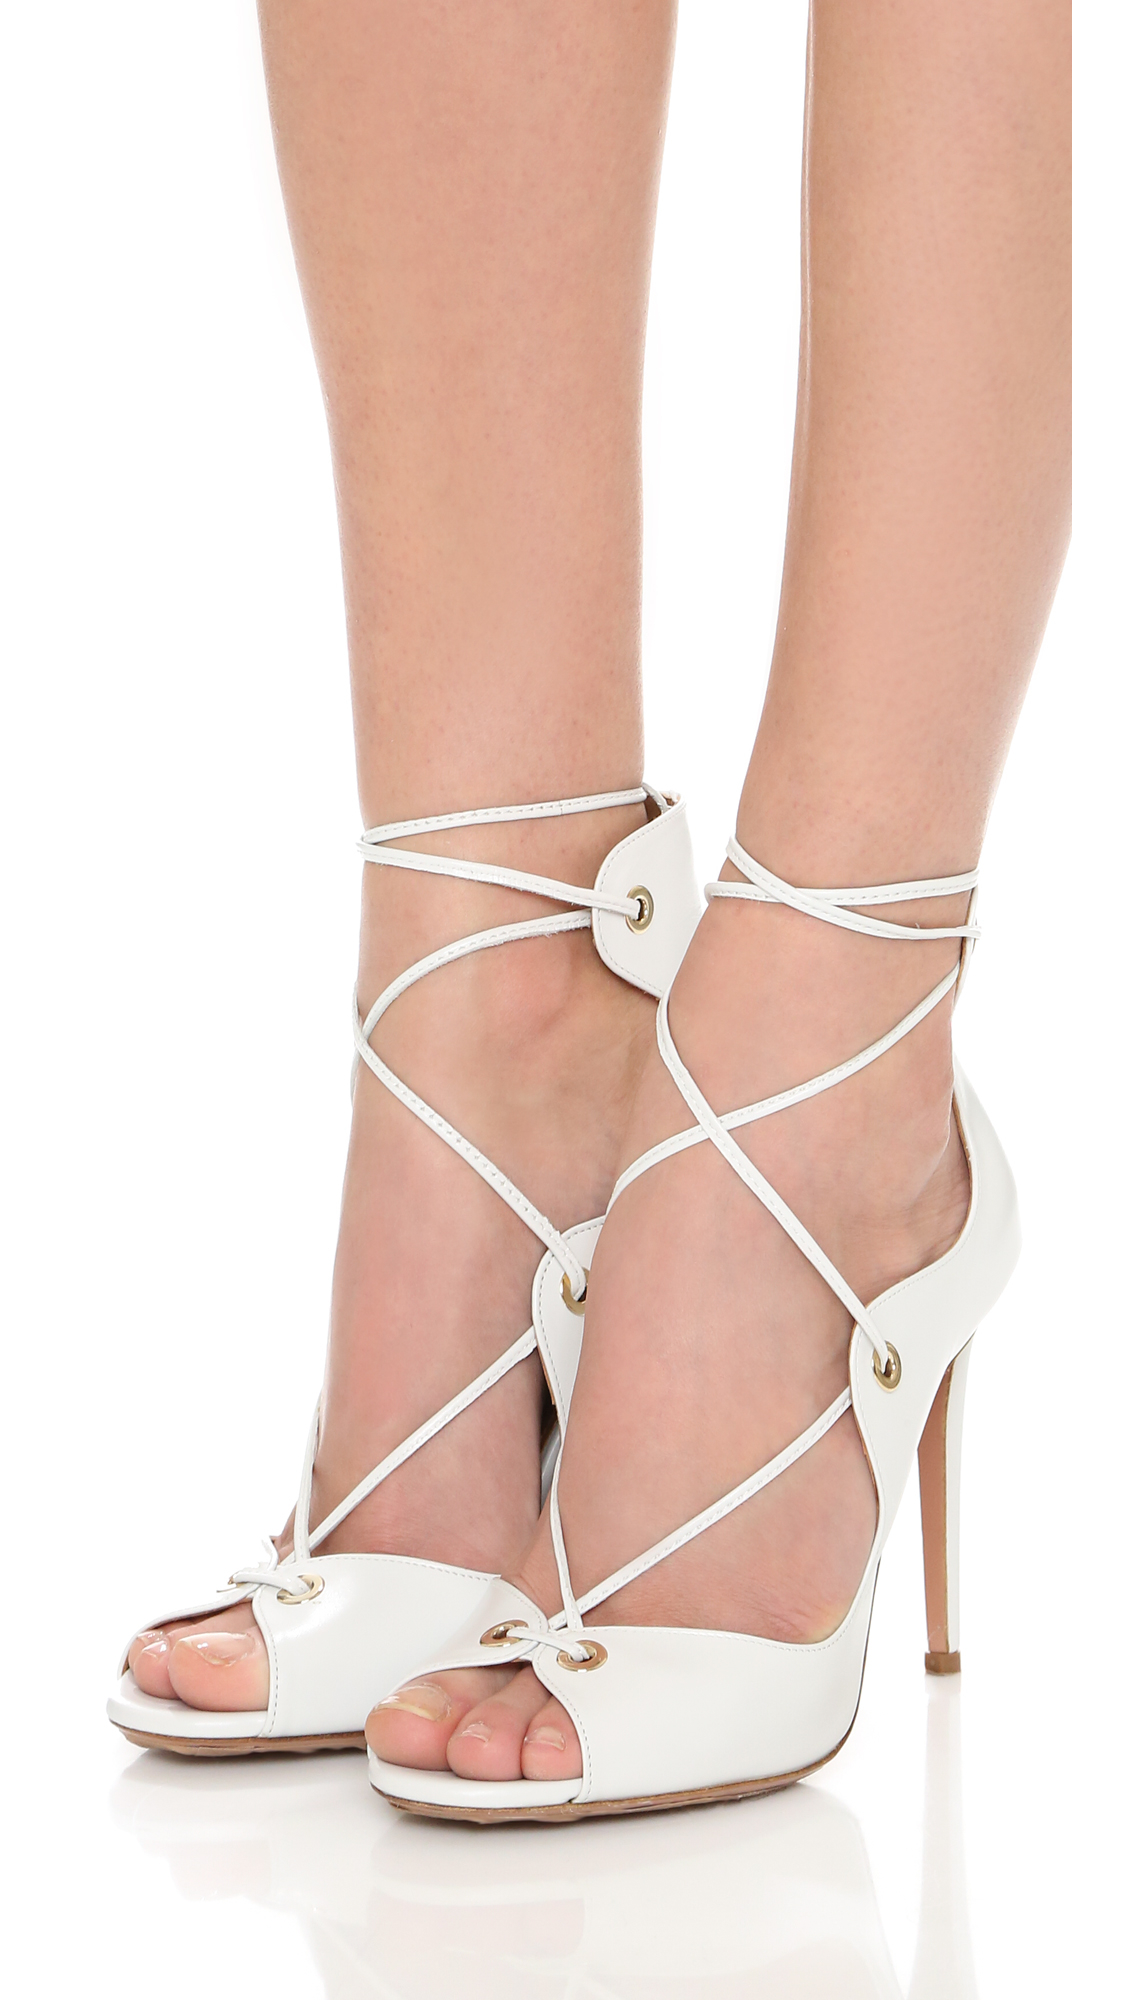 enjoy shopping Aquazzura Tango Lace-Up Sandals original for sale extremely sale online buy cheap cheapest price bvUPM